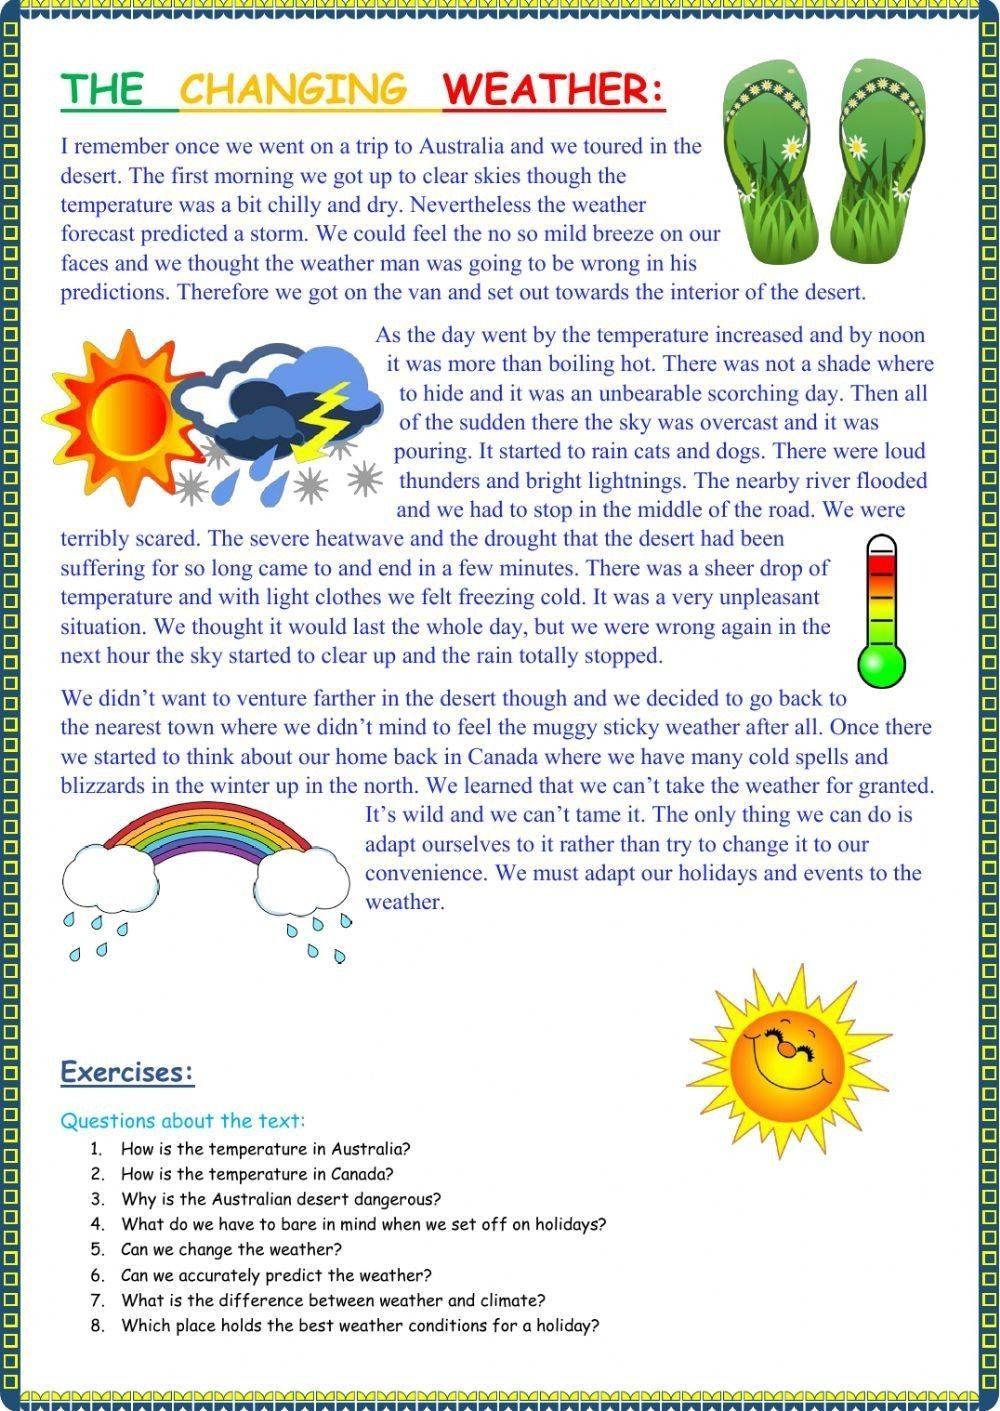 Pin By Irina Sargsyan On Learn English Reading Comprehension Worksheets Reading Worksheets Reading Comprehension [ 1411 x 1000 Pixel ]